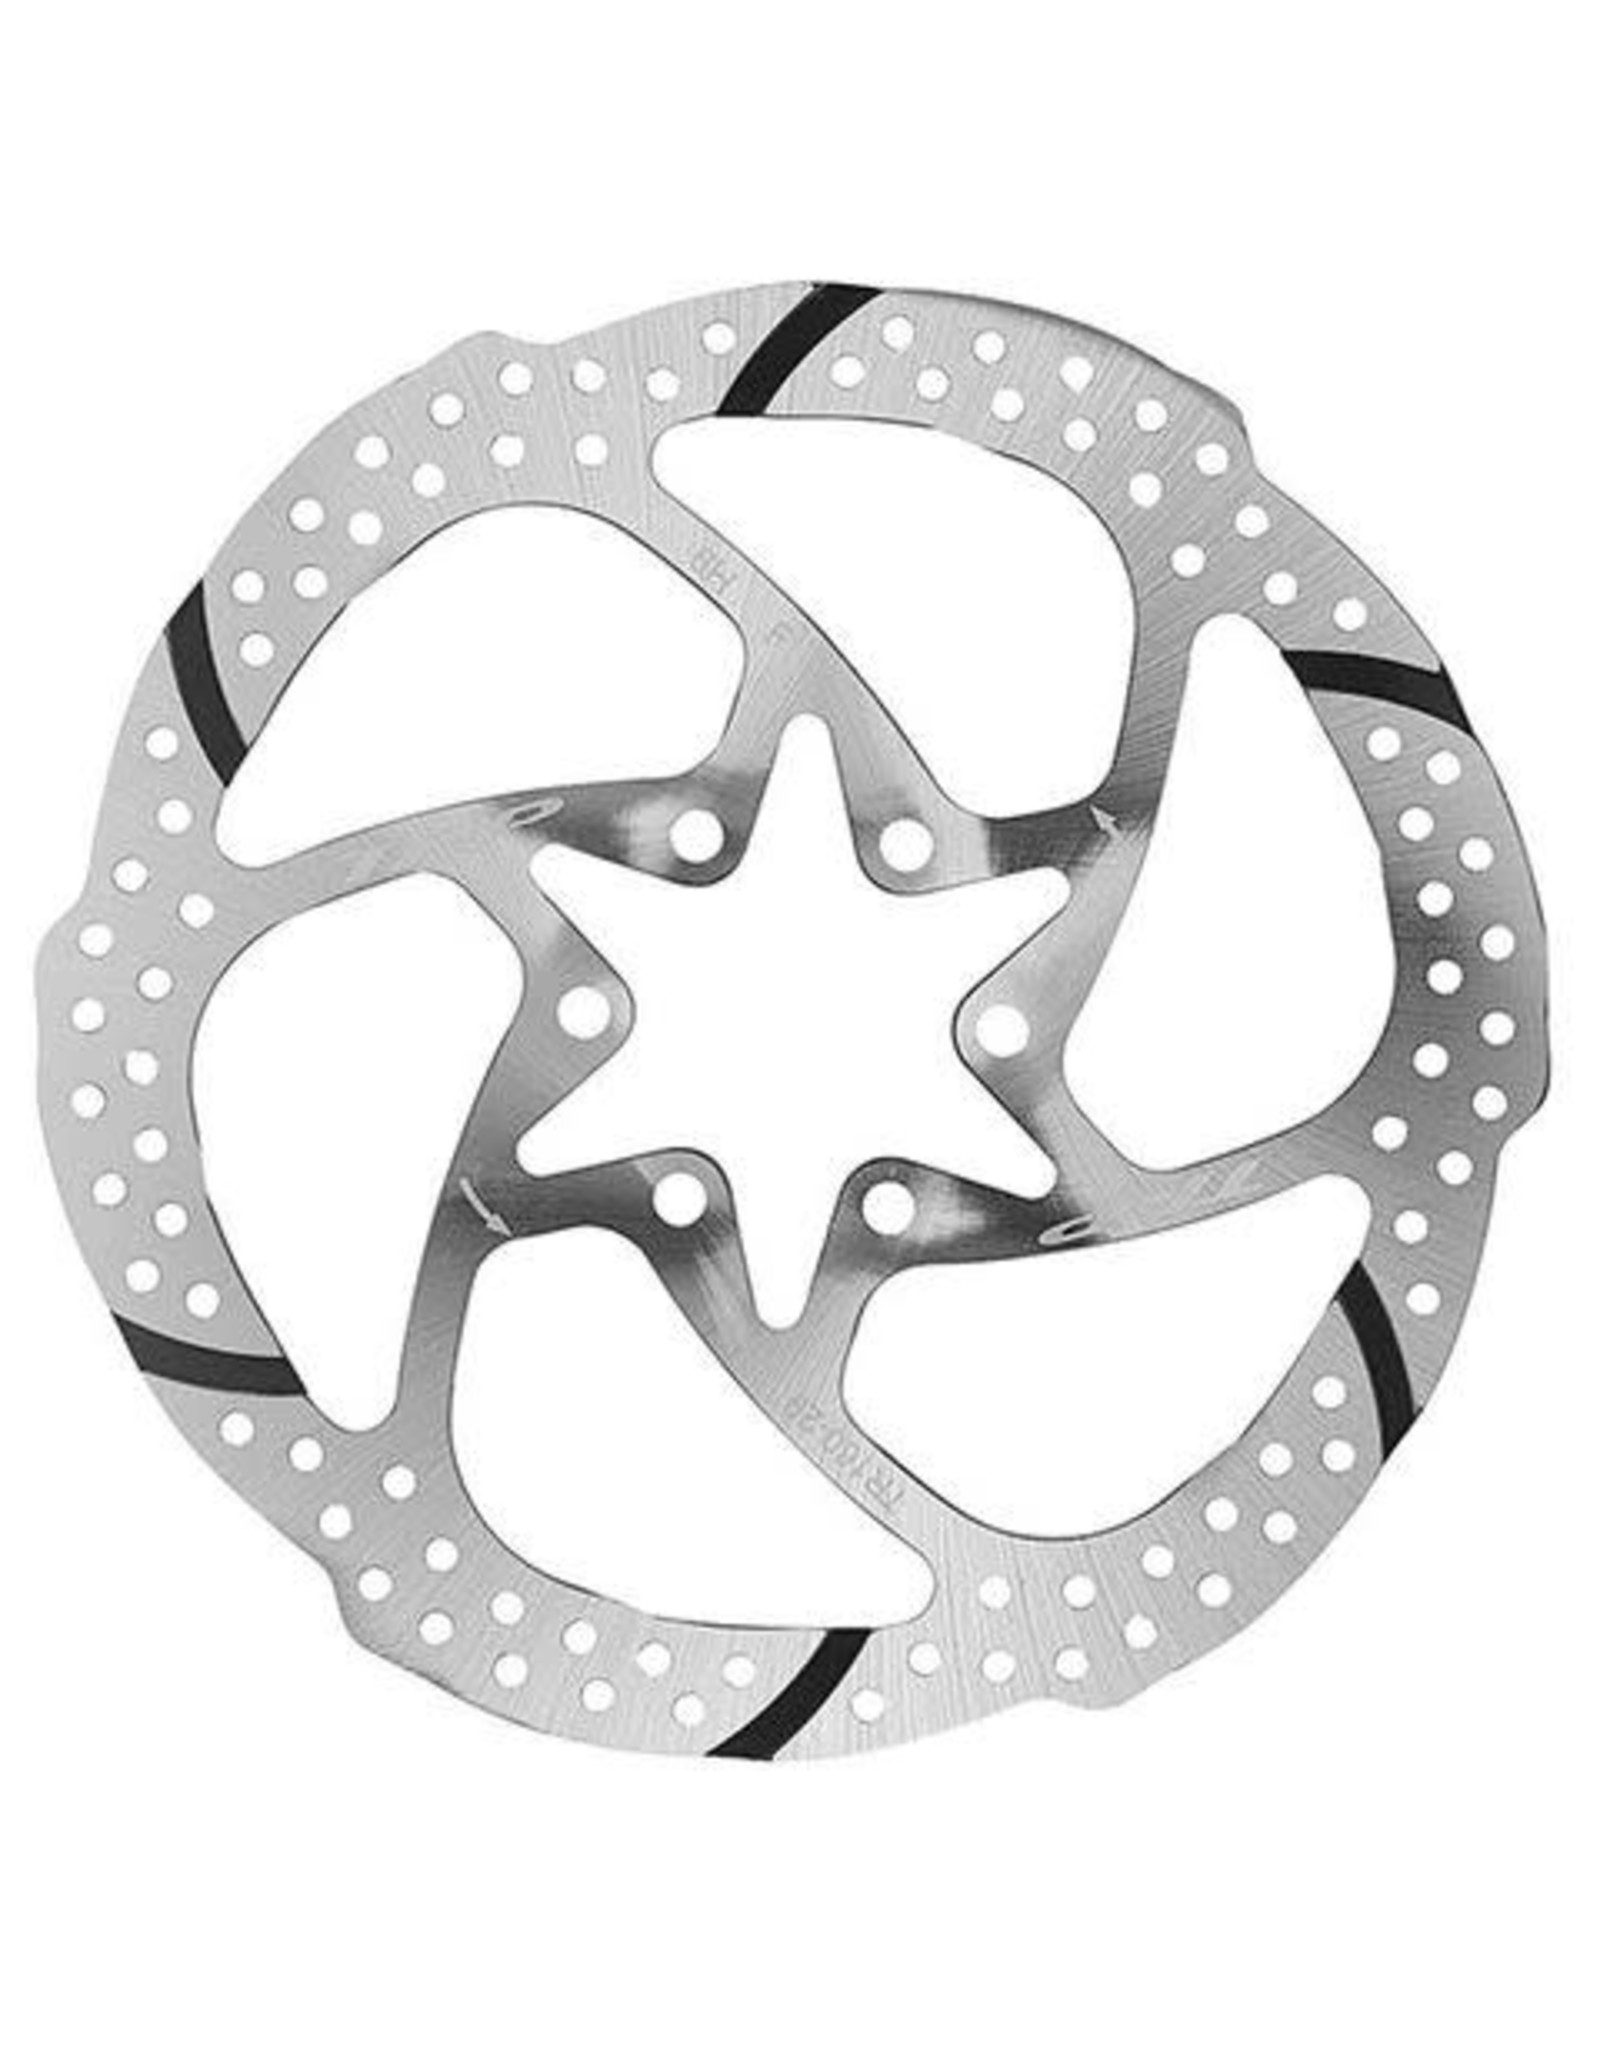 TRP BRAKE ROTOR TRP-29 SLOTTED 1 PIECE 203MM 6 BOLT STAINLESS STEEL